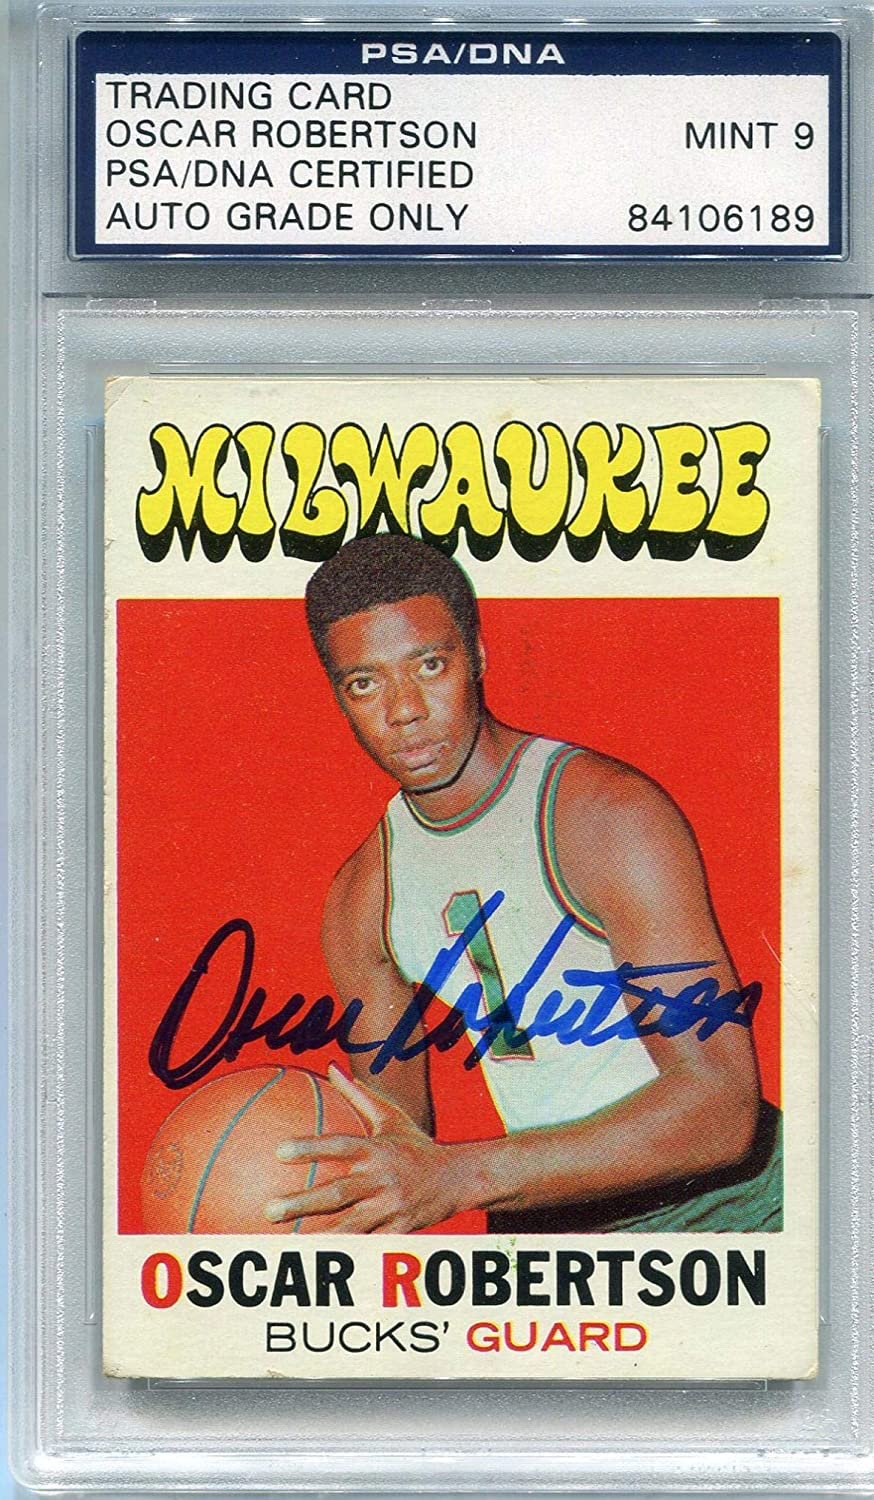 Oscar Robertson Autographed 1971-72 Topps Card (PSA/DNA) - Basketball Autographed Cards